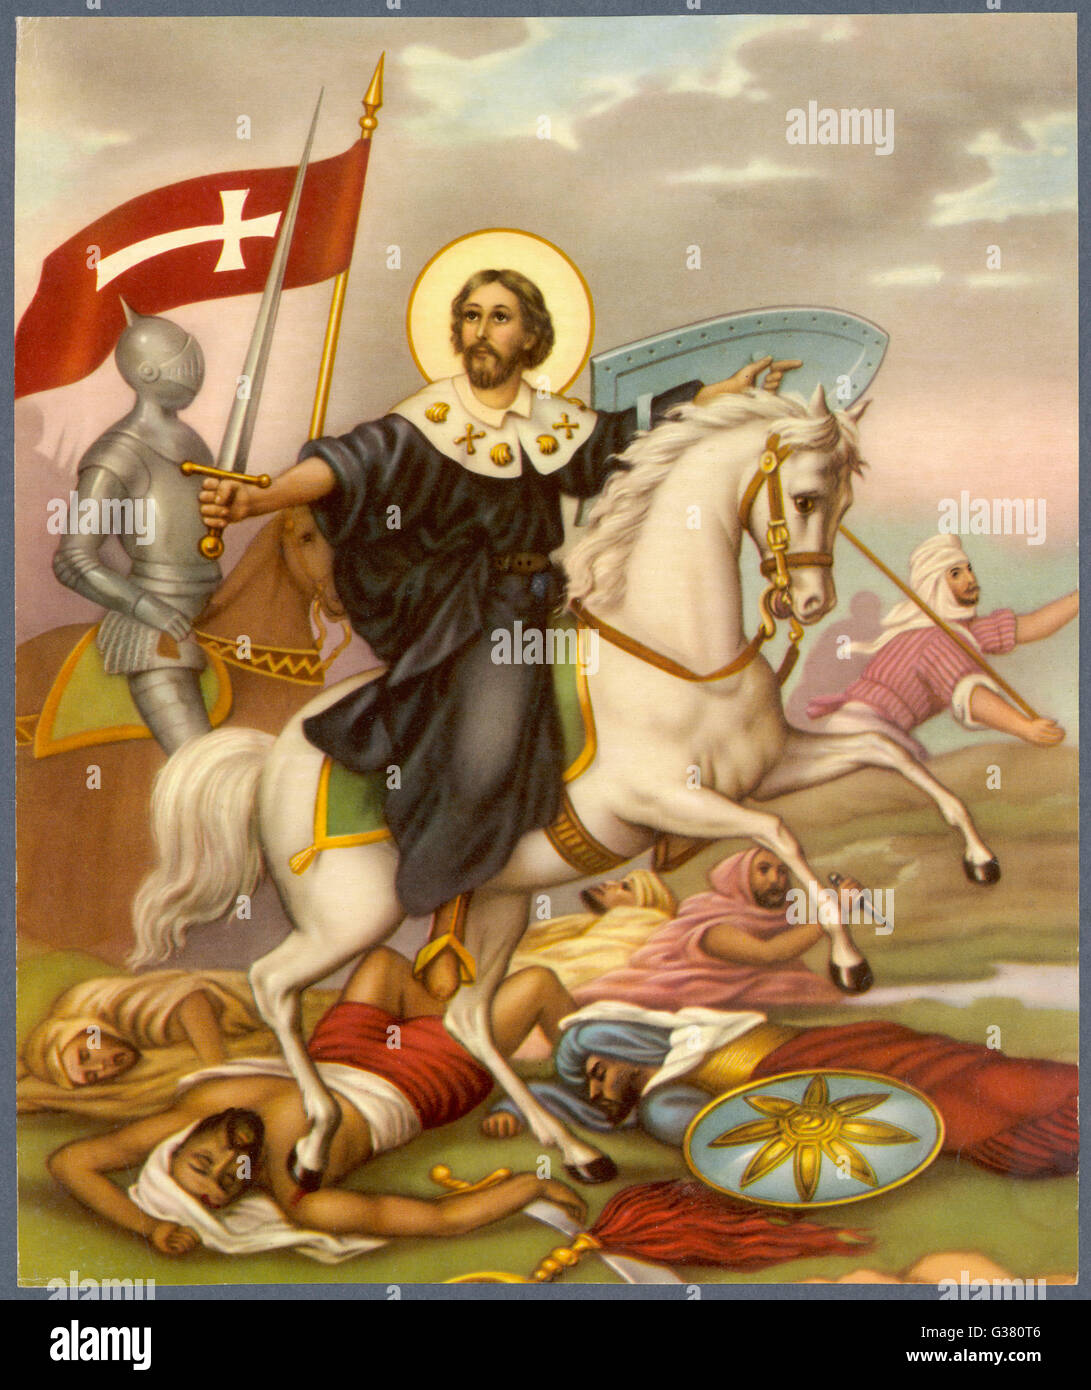 The Crusader depicted as a  Christian hero - Stock Image